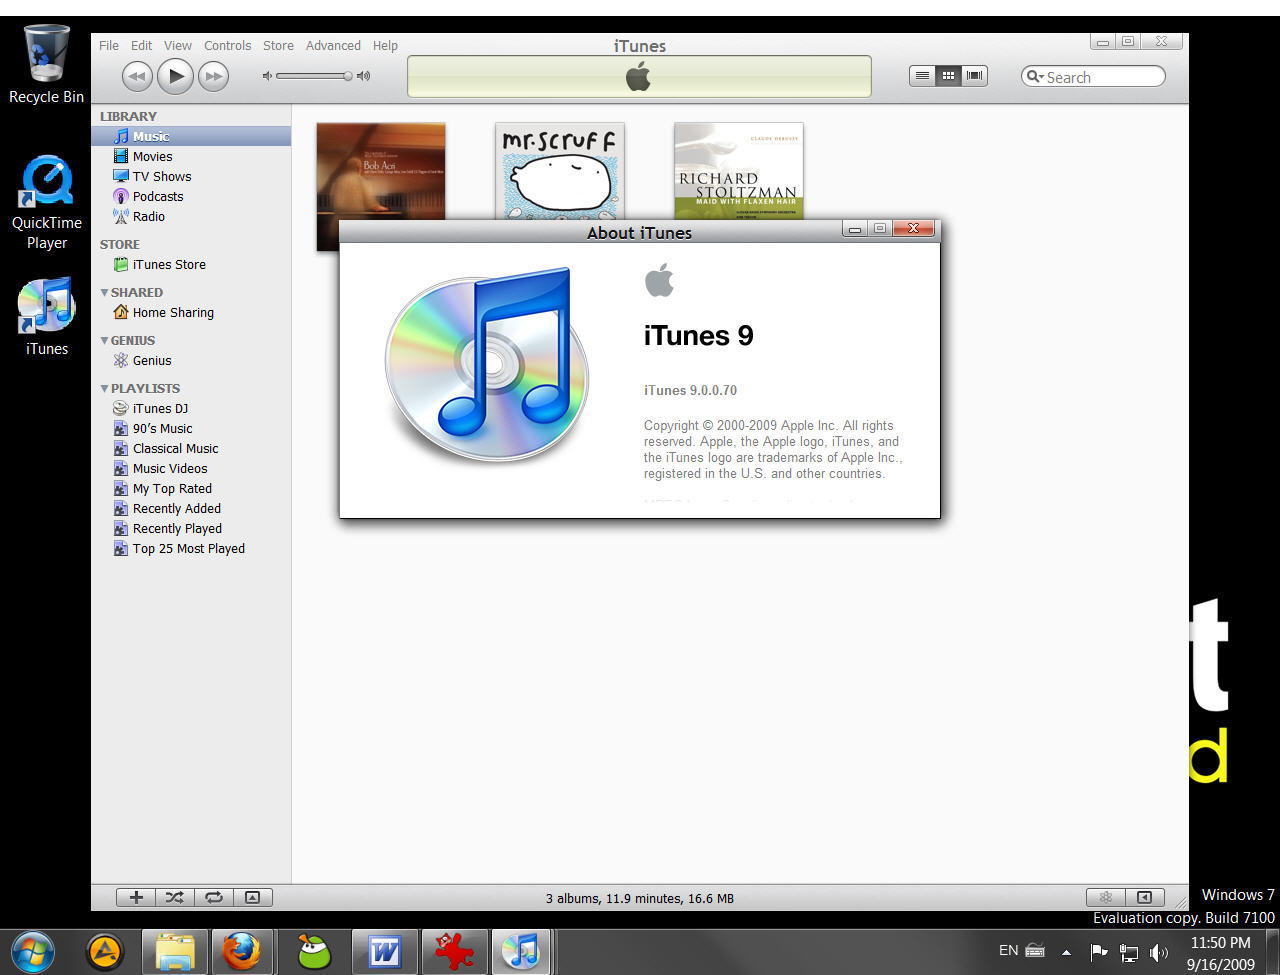 Download itunes software for windows 7 pc | Download iTunes 12 7 2